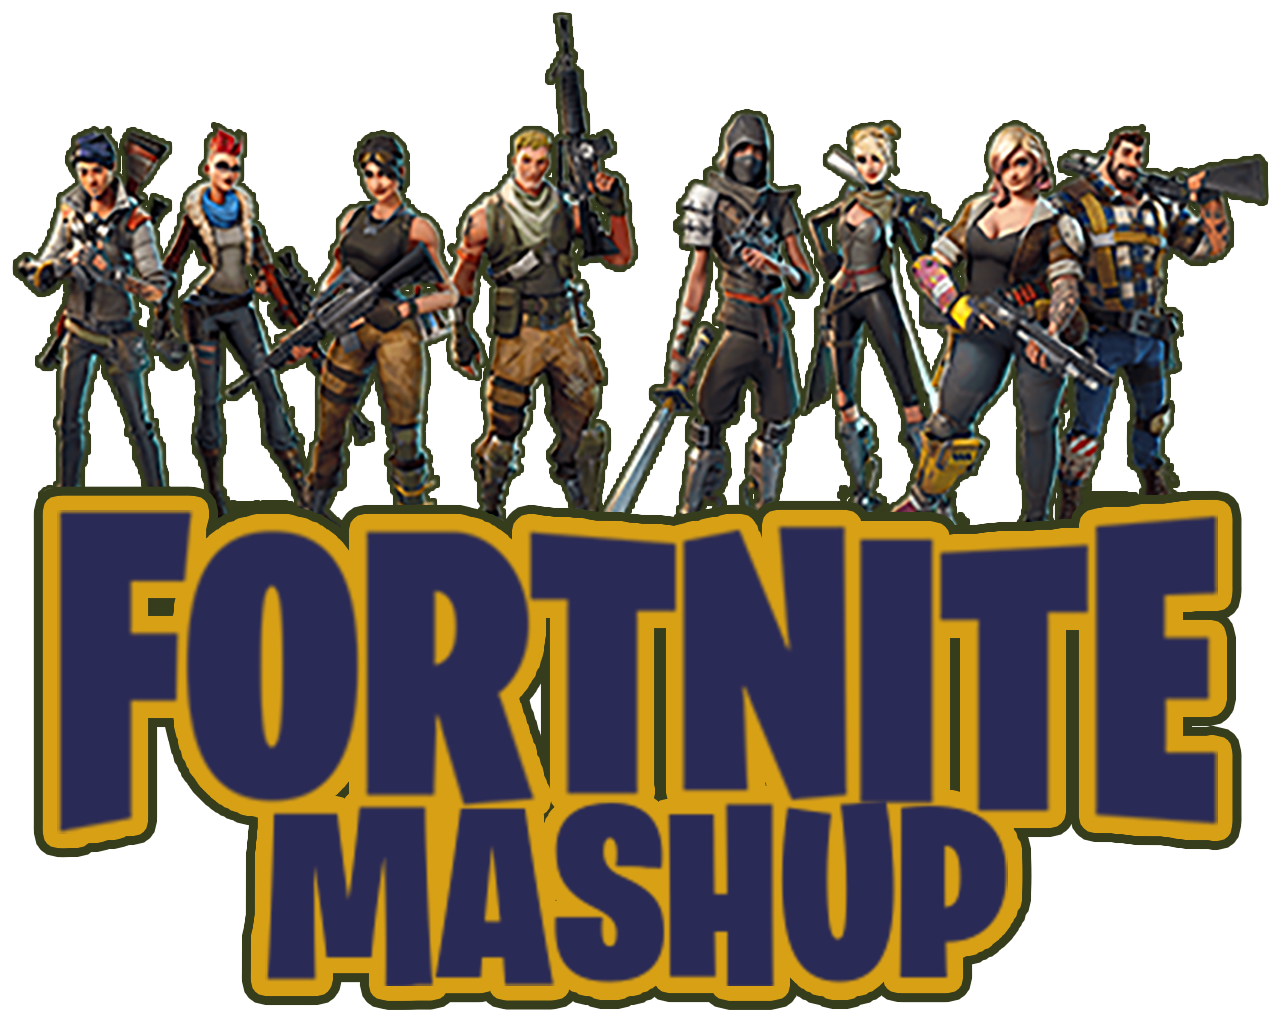 fortnite png fortnite logo fortnite characters and skins images free download free transparent png logos fortnite png fortnite logo fortnite